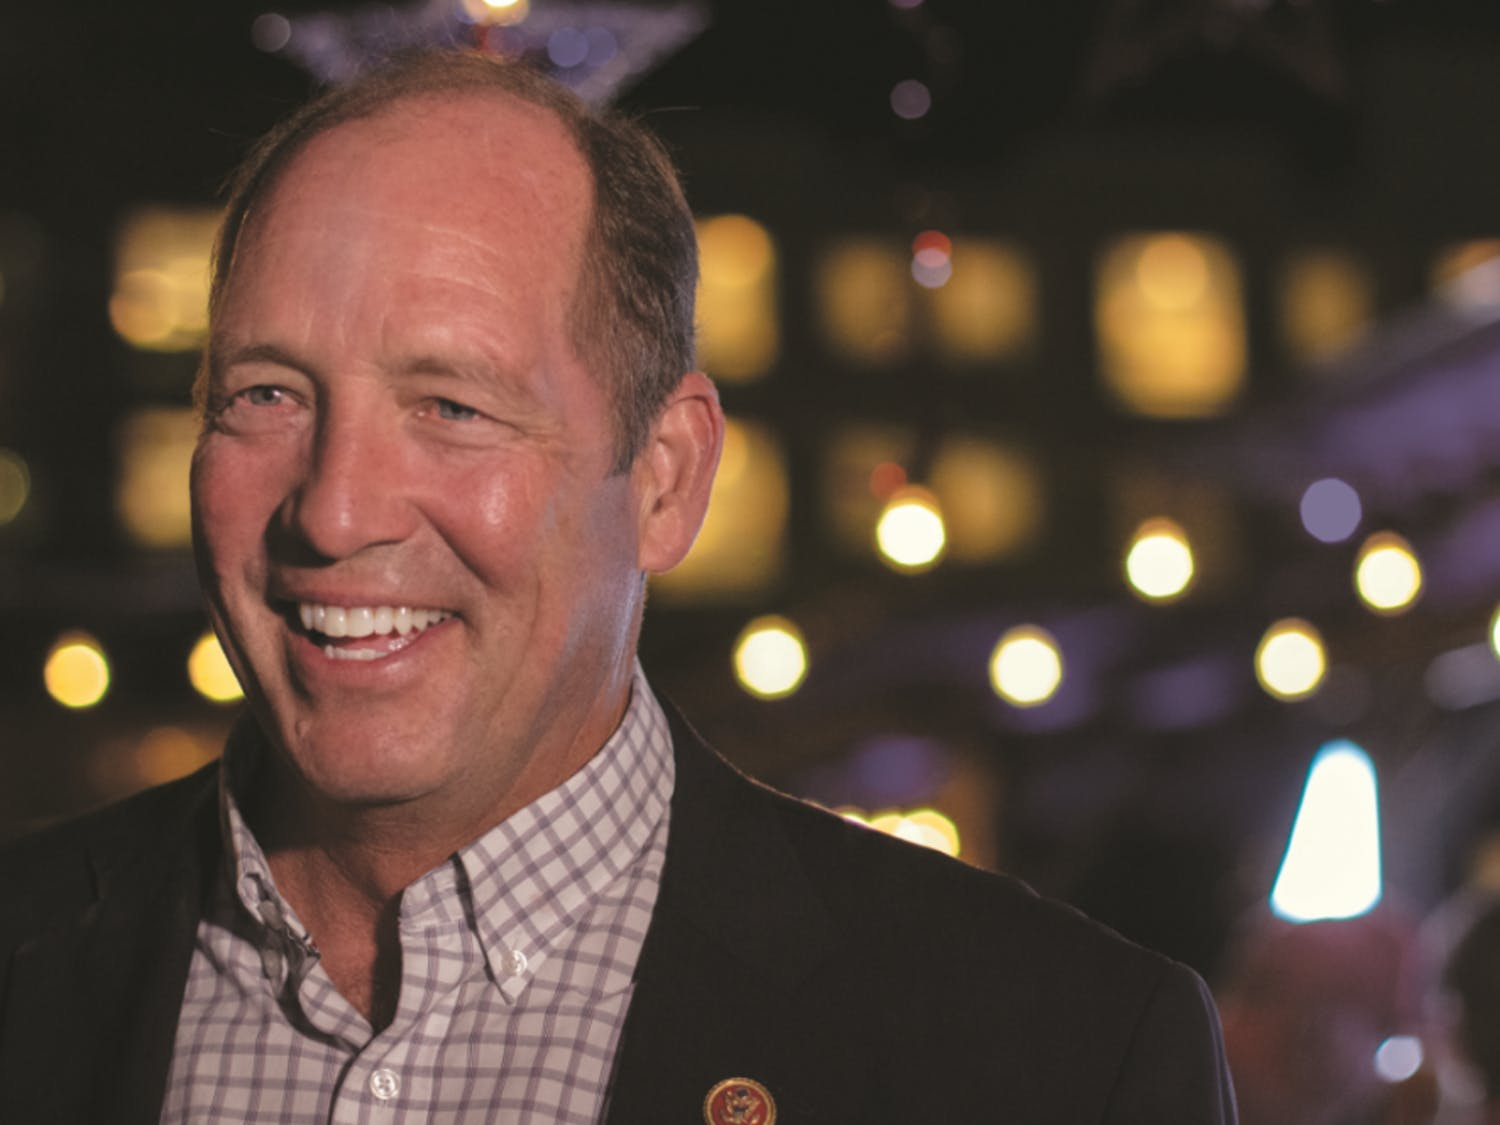 """U.S. Rep. Ted Yoho smiles while he waits for the final results of Florida's 3rd Congressional District election. """"I want to see the final results, but I feel good,"""" Yoho said."""